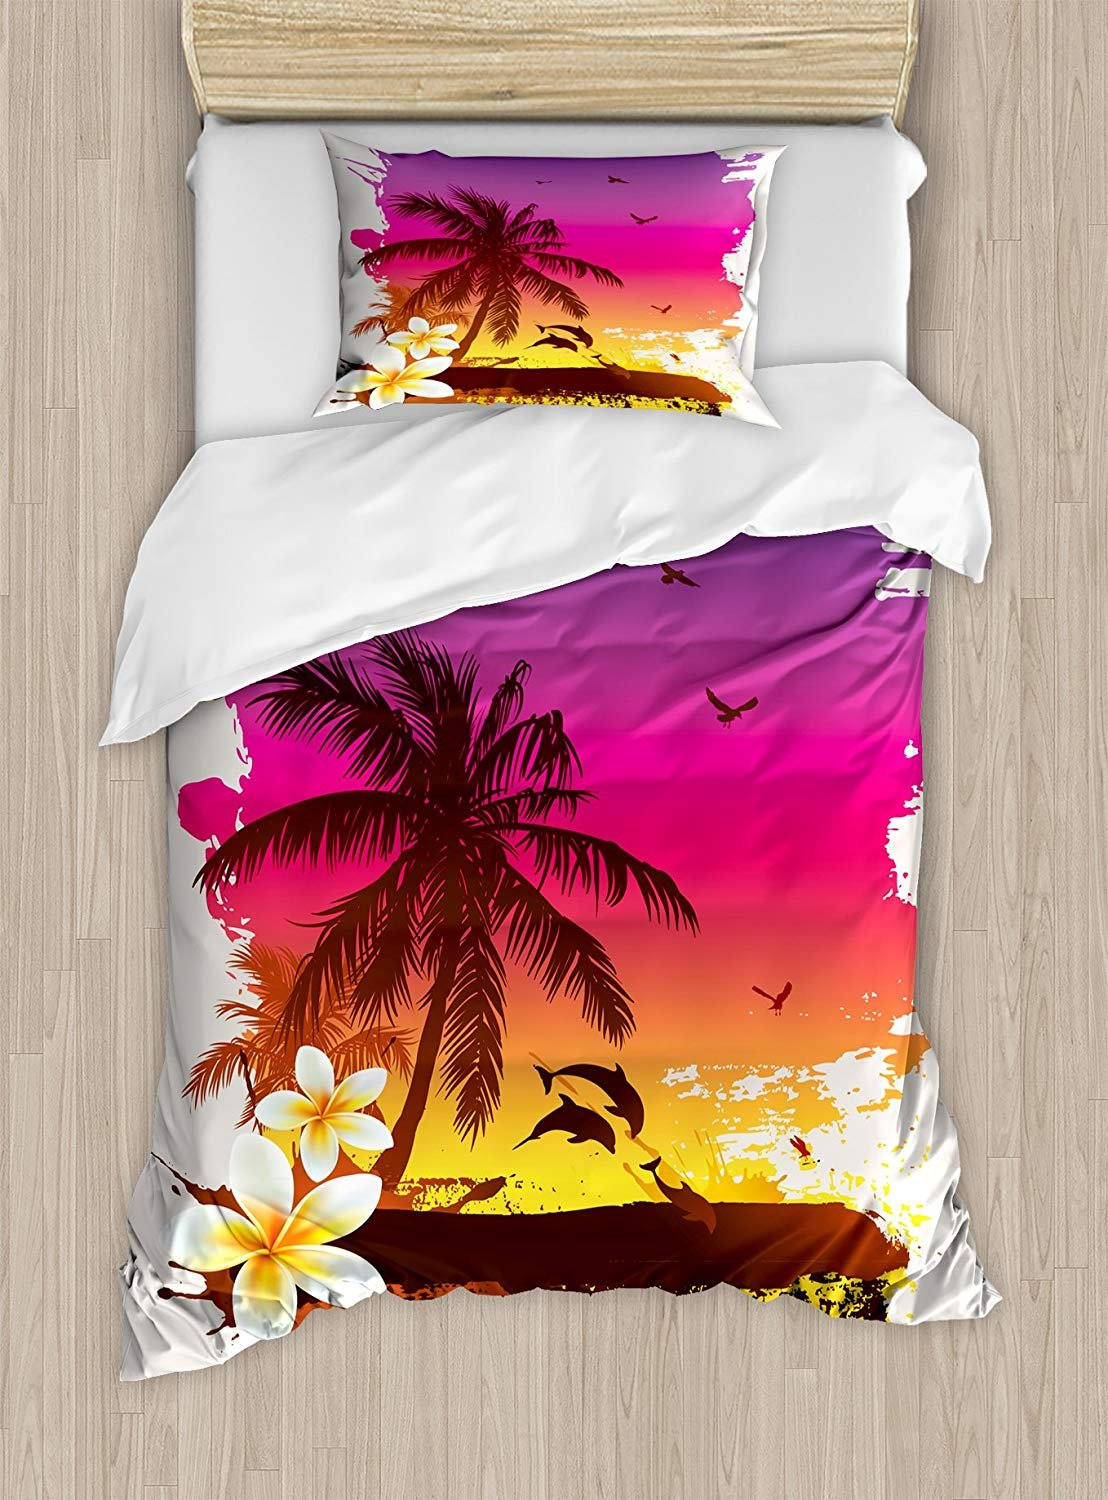 Fantasy Star Twin XL Extra Long Bedding Set,Luau Duvet Cover Set,Tropical Sunset in Retro Watercolor Style Palm Trees on The Beach Image,Include 1 Flat Sheet 1 Duvet Cover and 2 Pillow Cases